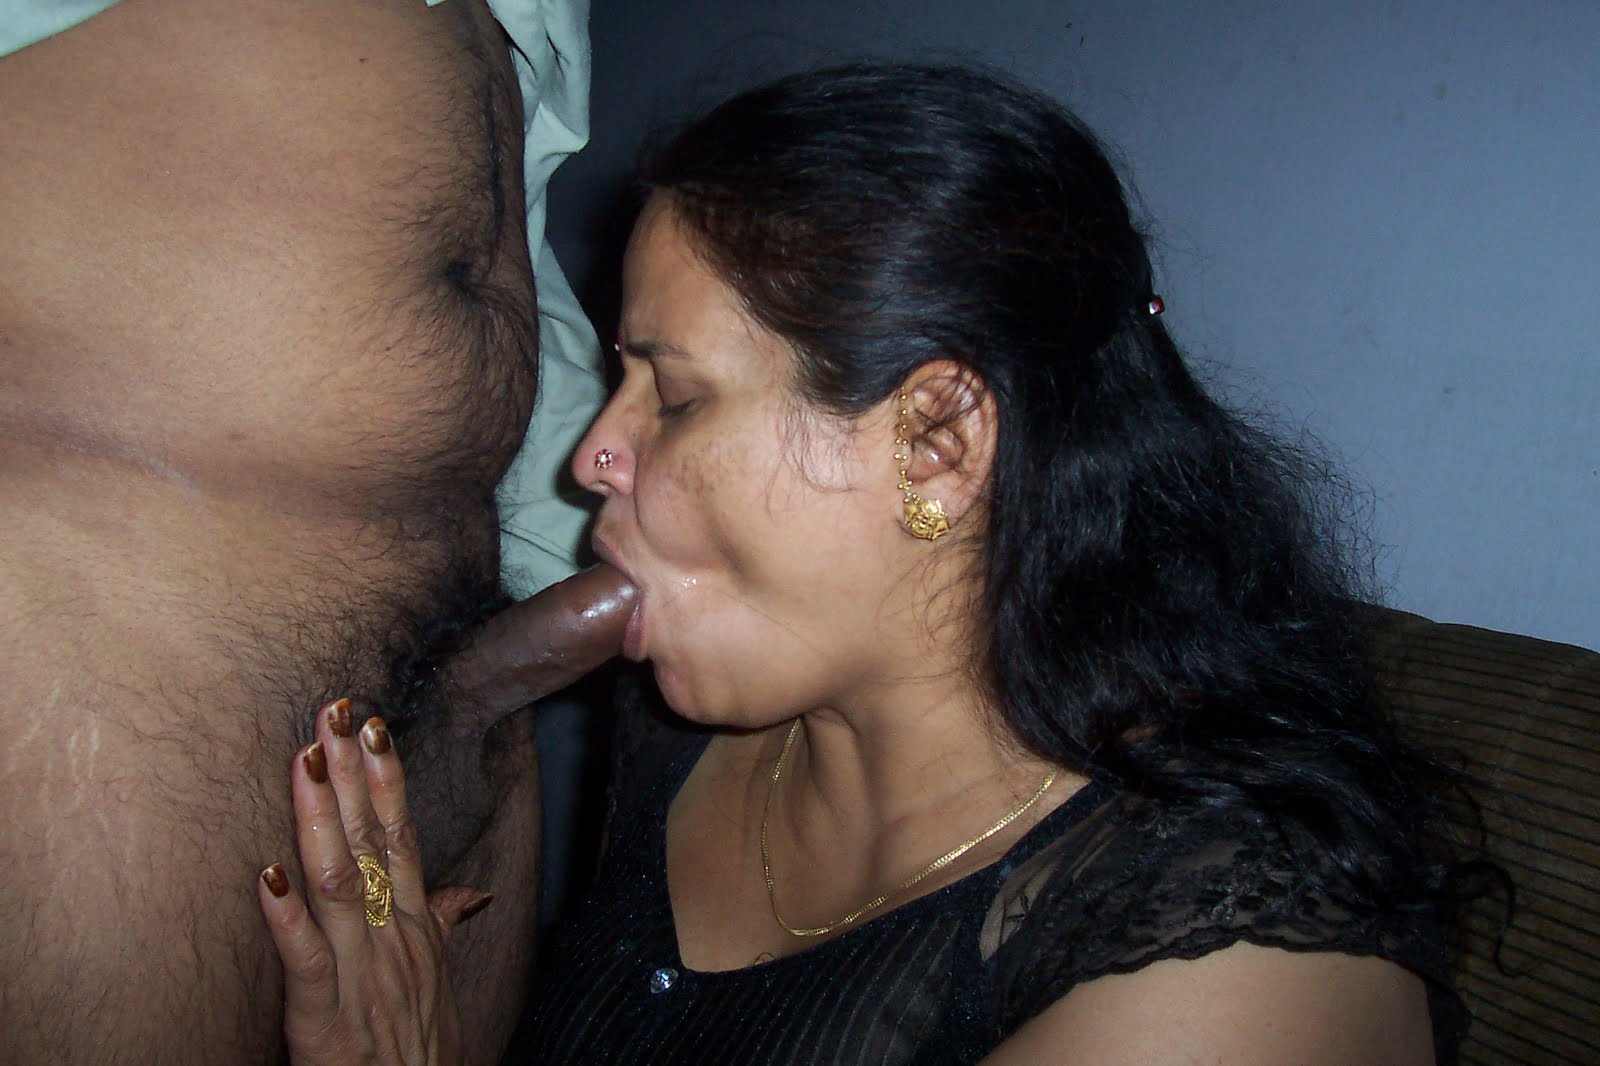 Mother forcing cumfilled gangbang on drugged daughter